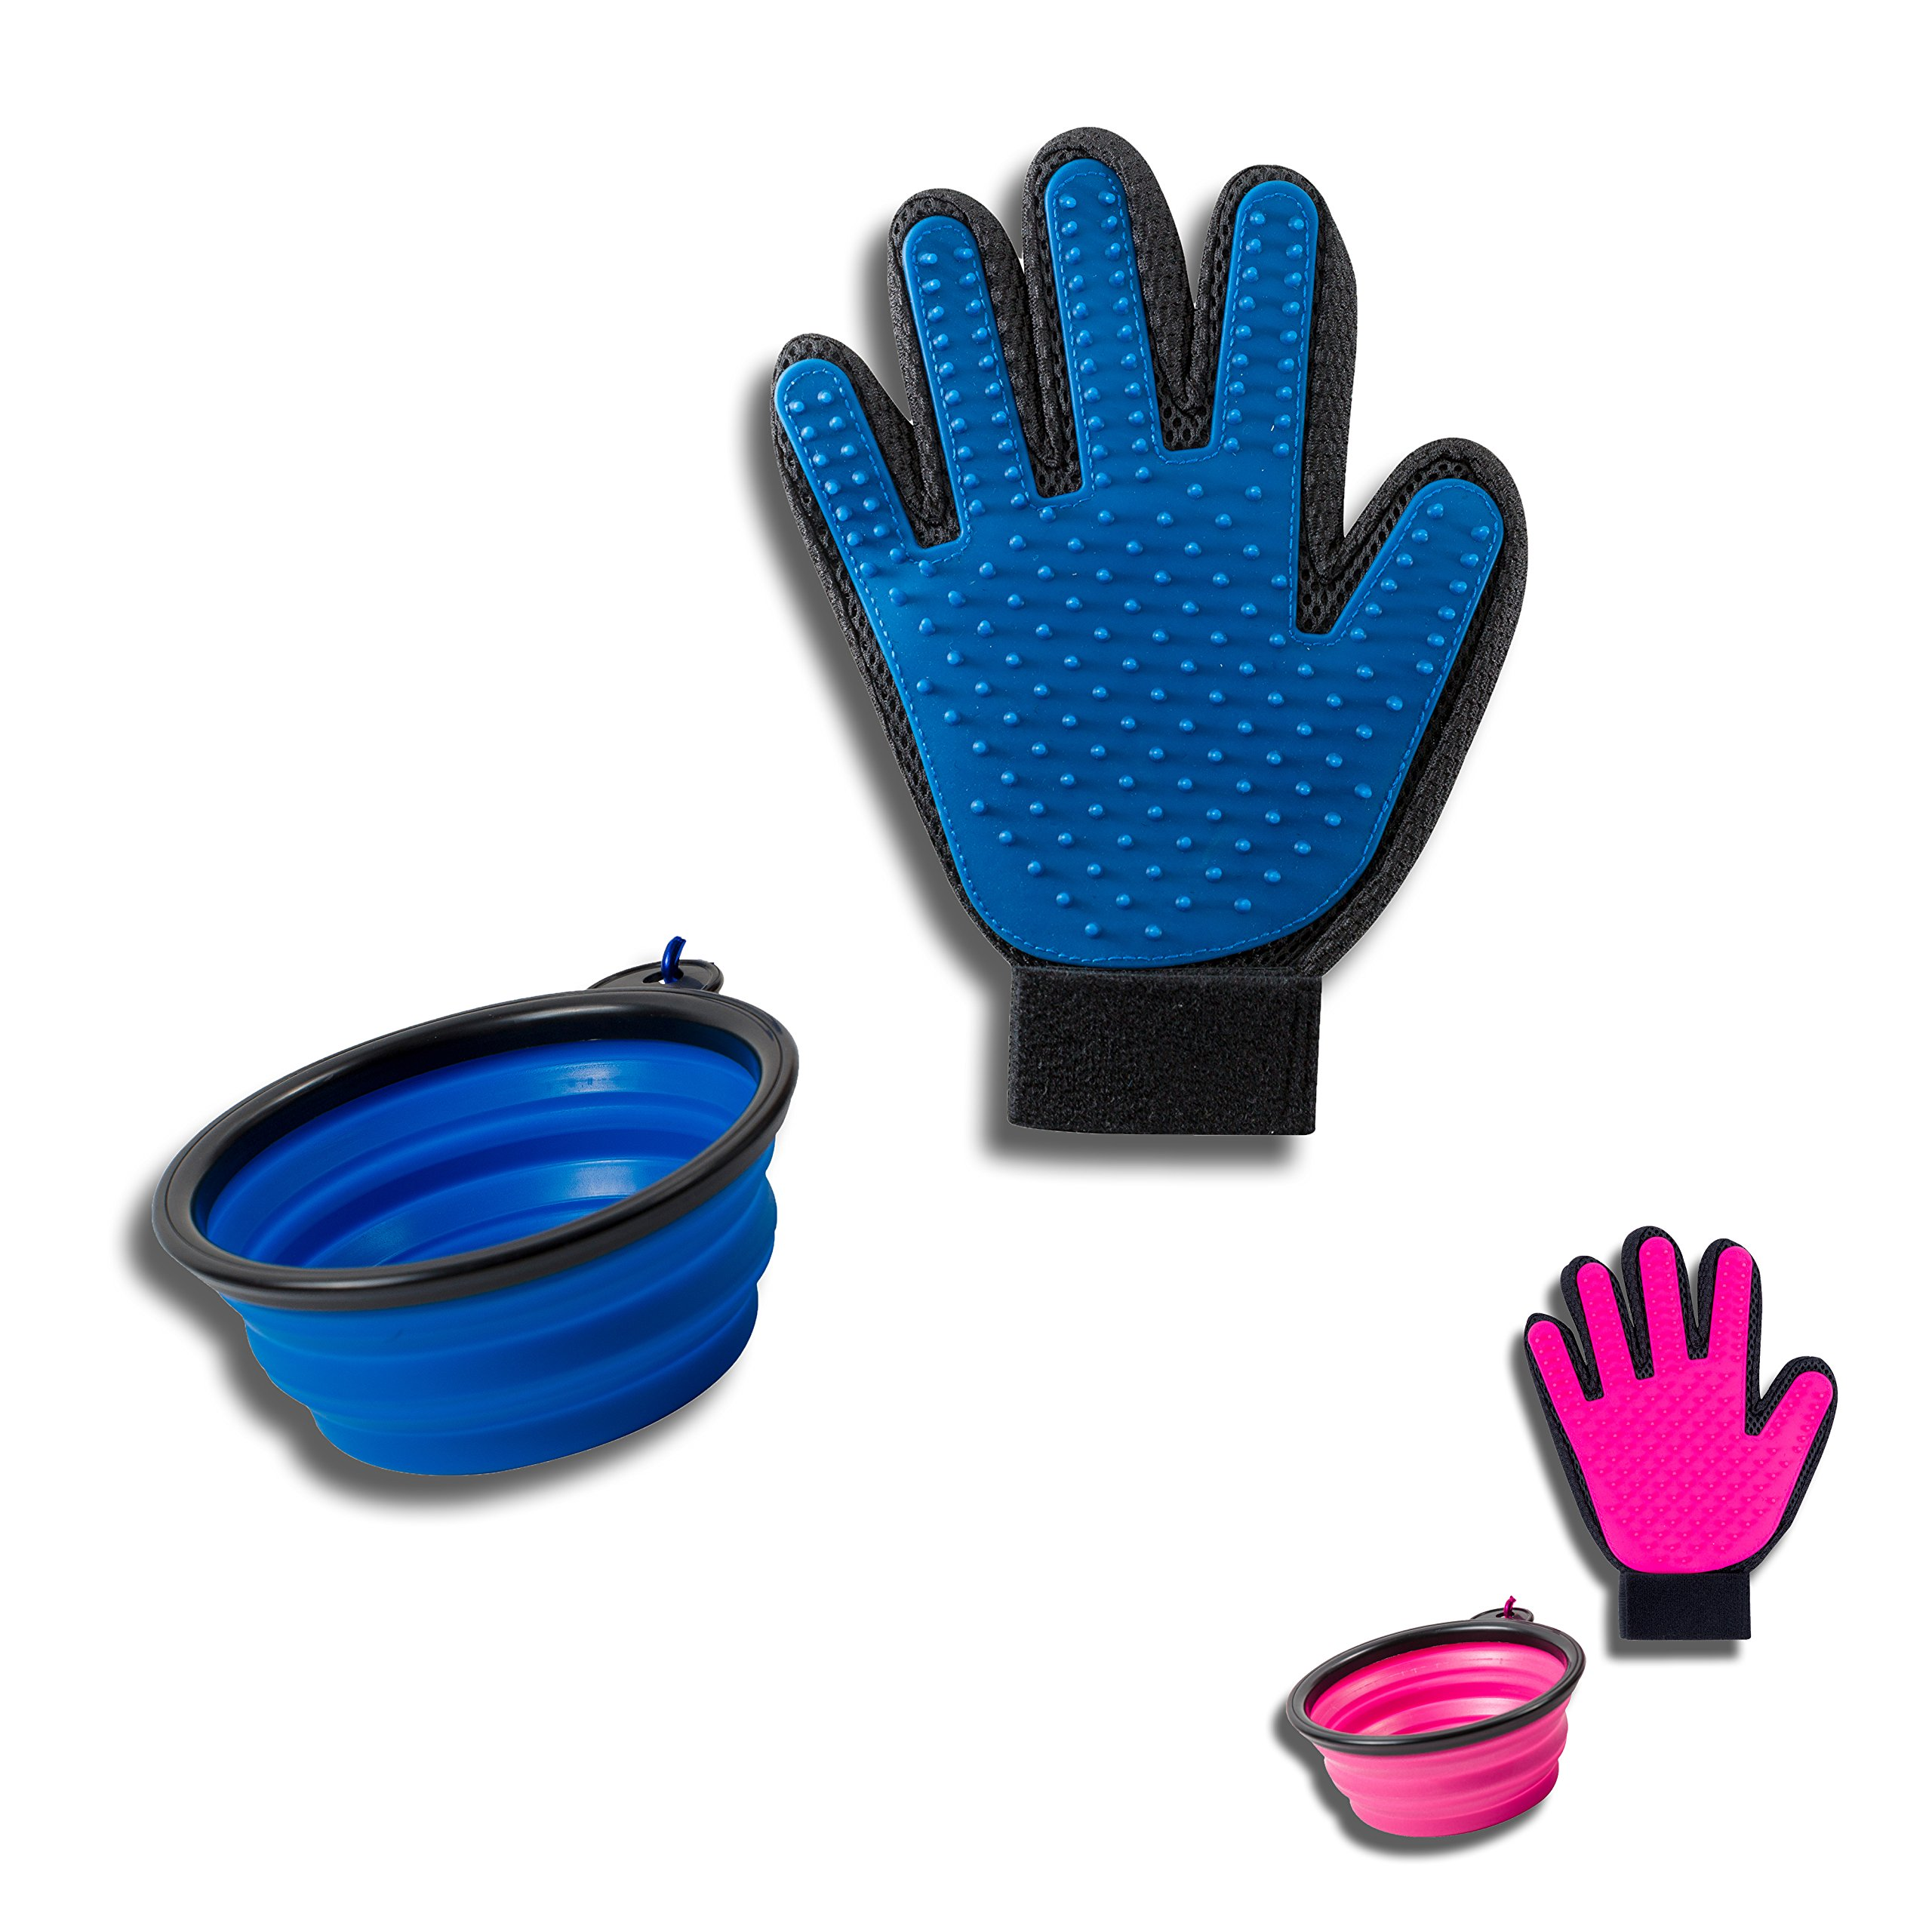 Soft Touch Pet Deshedding and Grooming Glove and Collapsible Travel Bowl for Food or Water, Gift Set